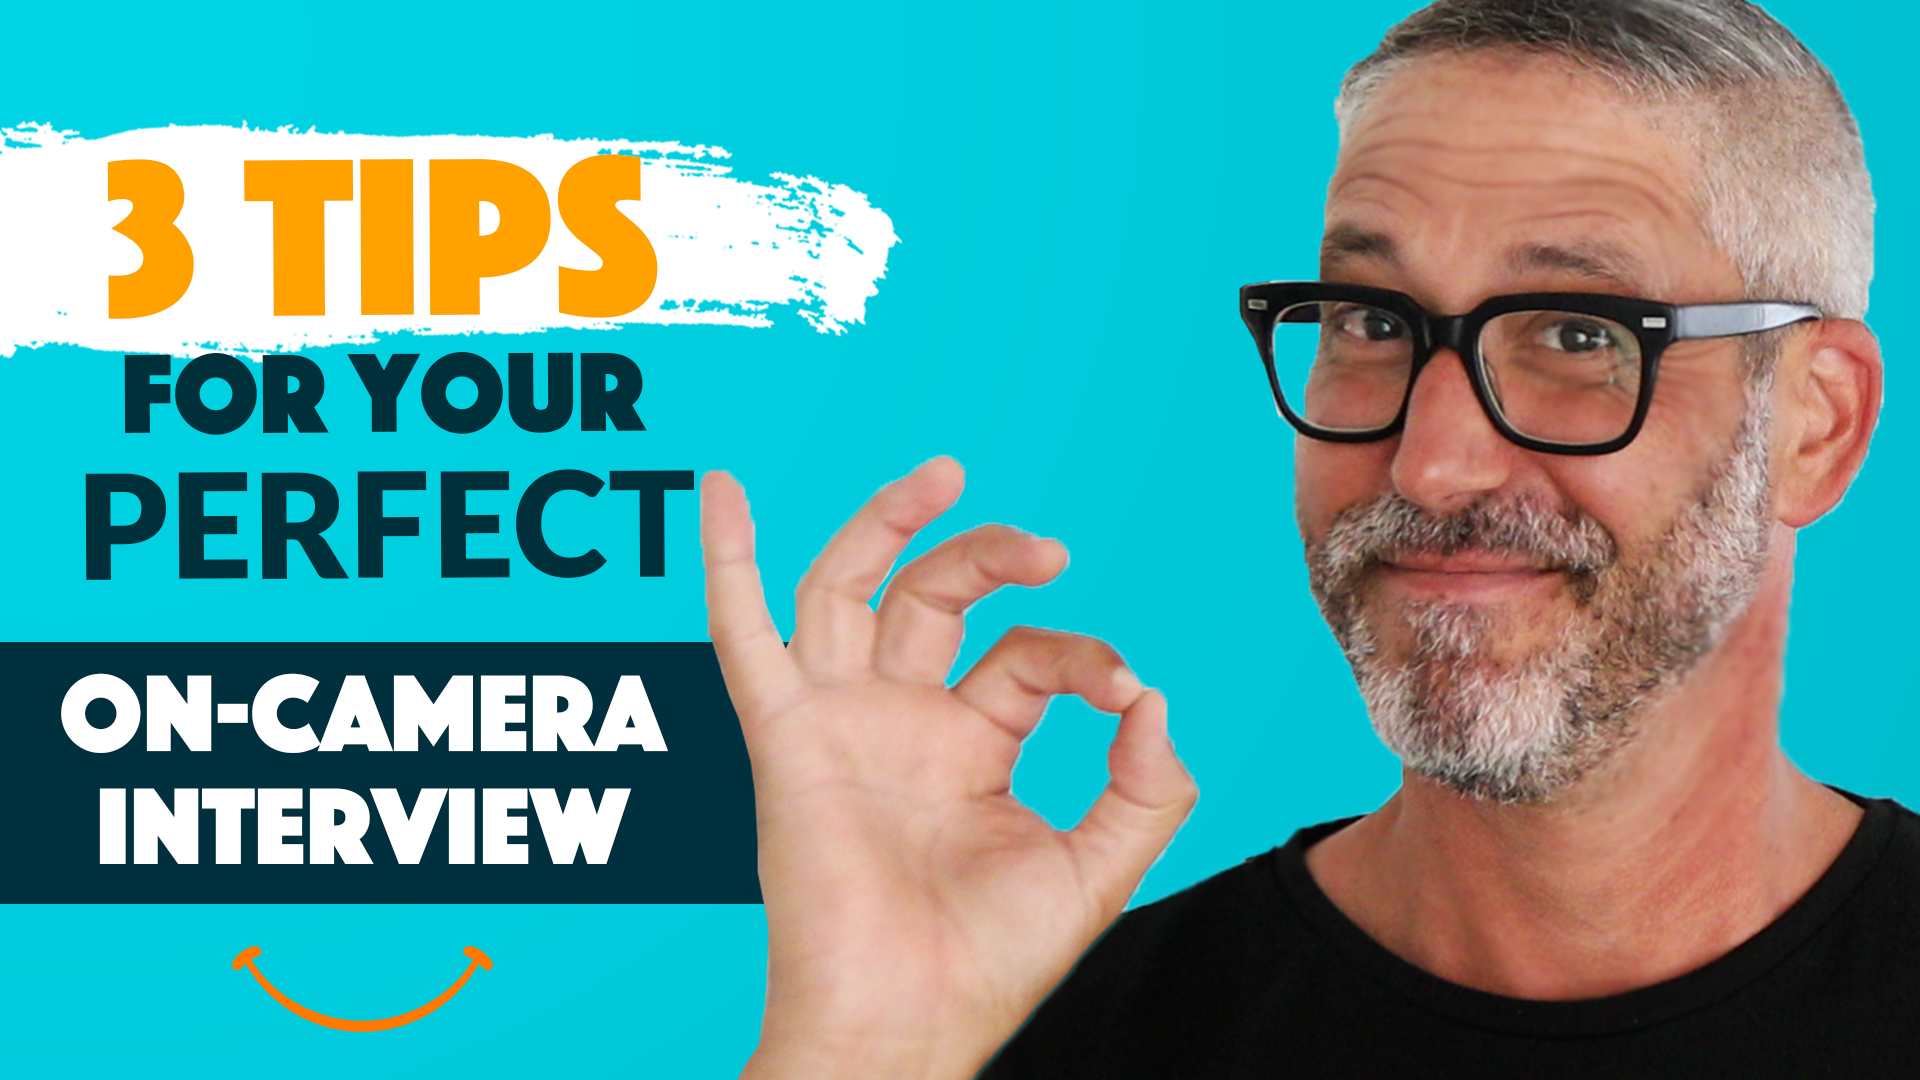 On-Camera Interview Tips To Look Your Best